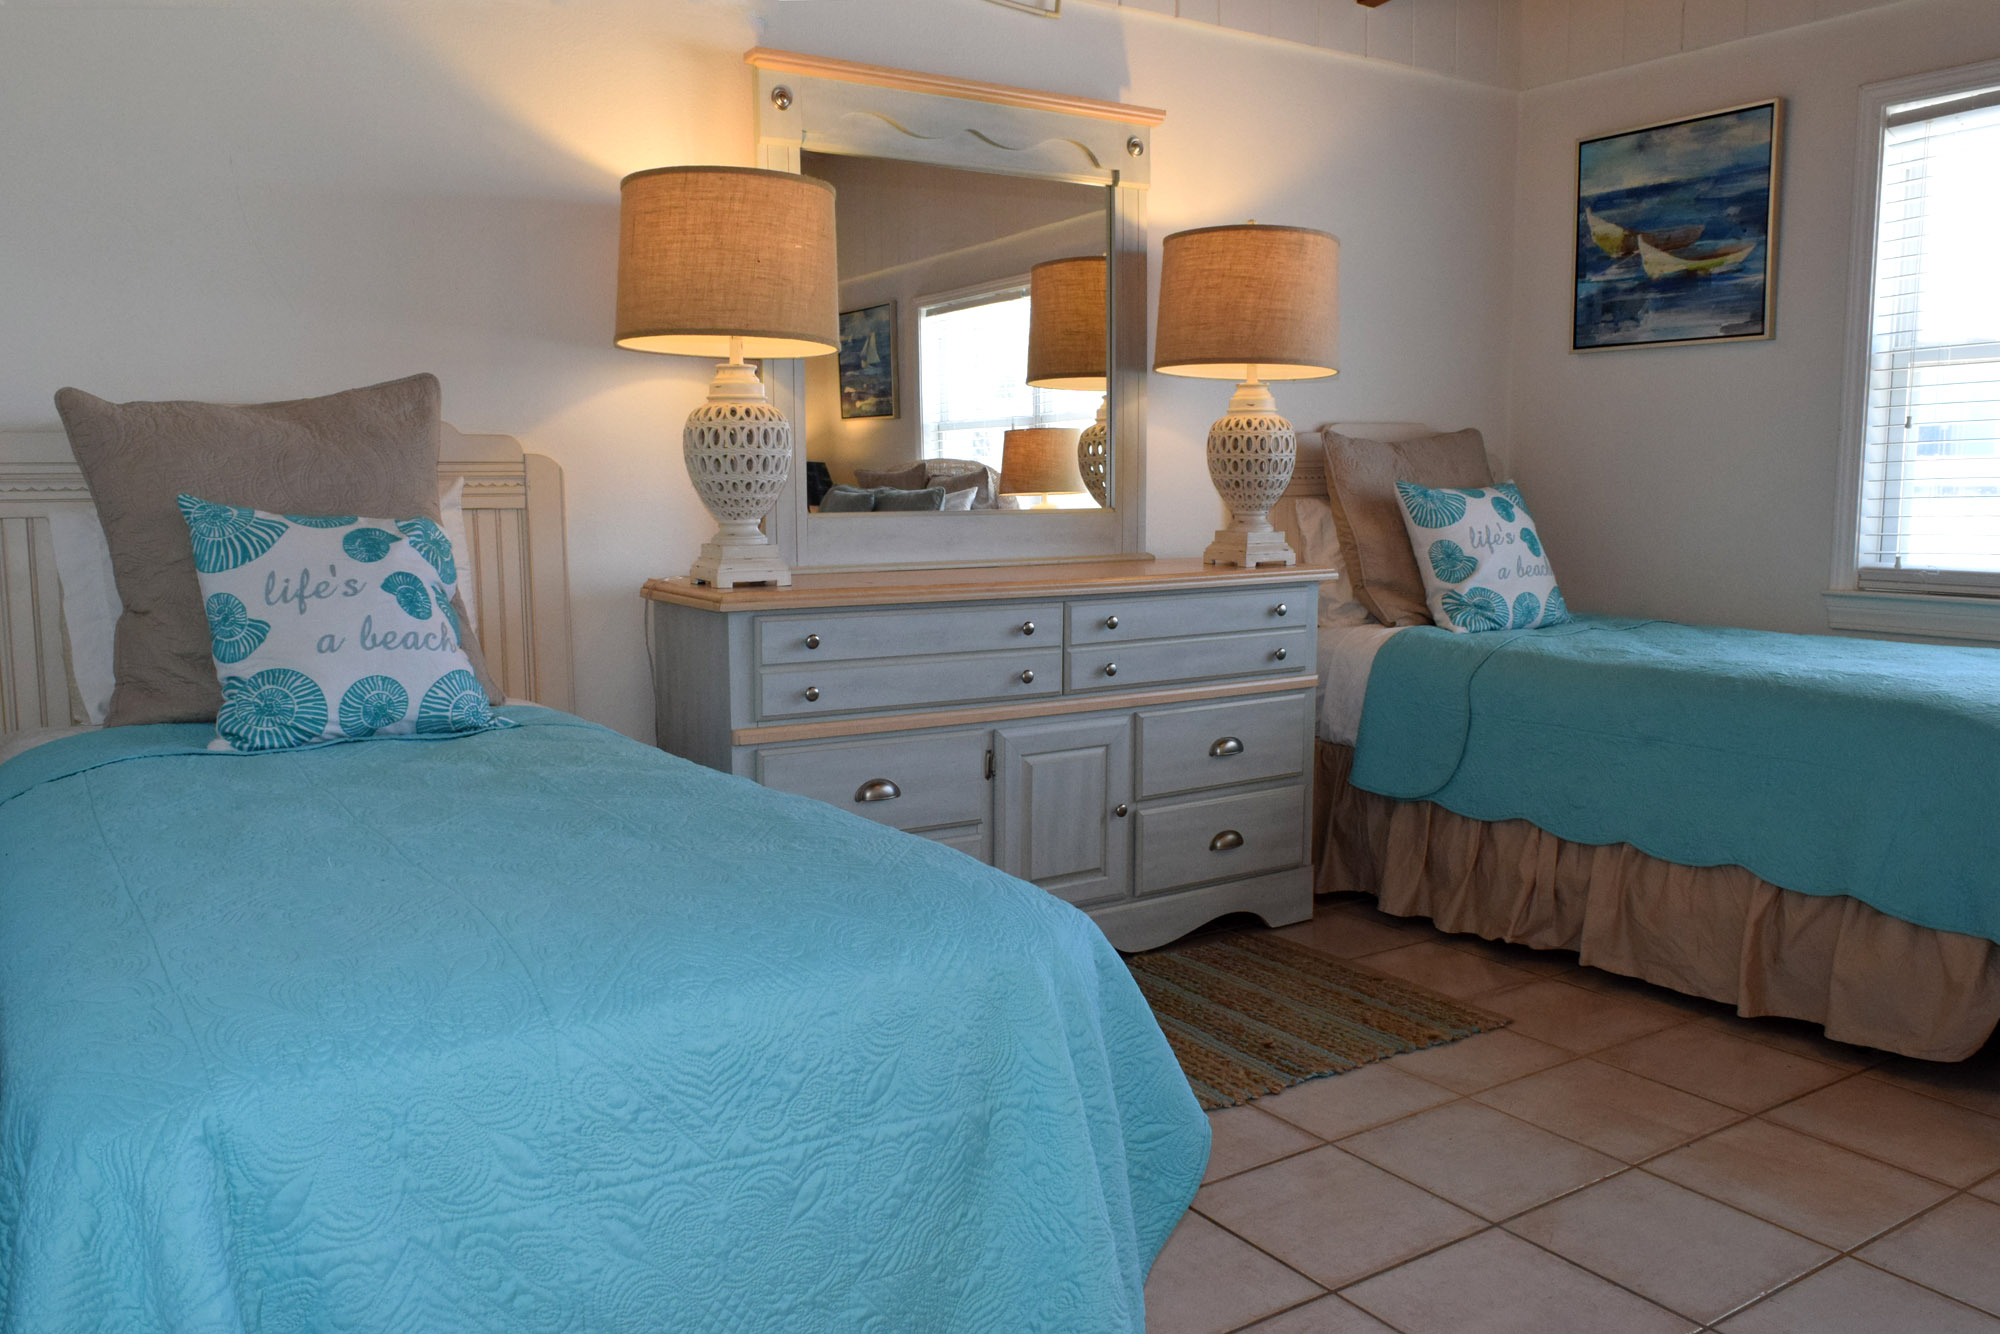 Avenida 14 - 402 House / Cottage rental in Pensacola Beach House Rentals in Pensacola Beach Florida - #31